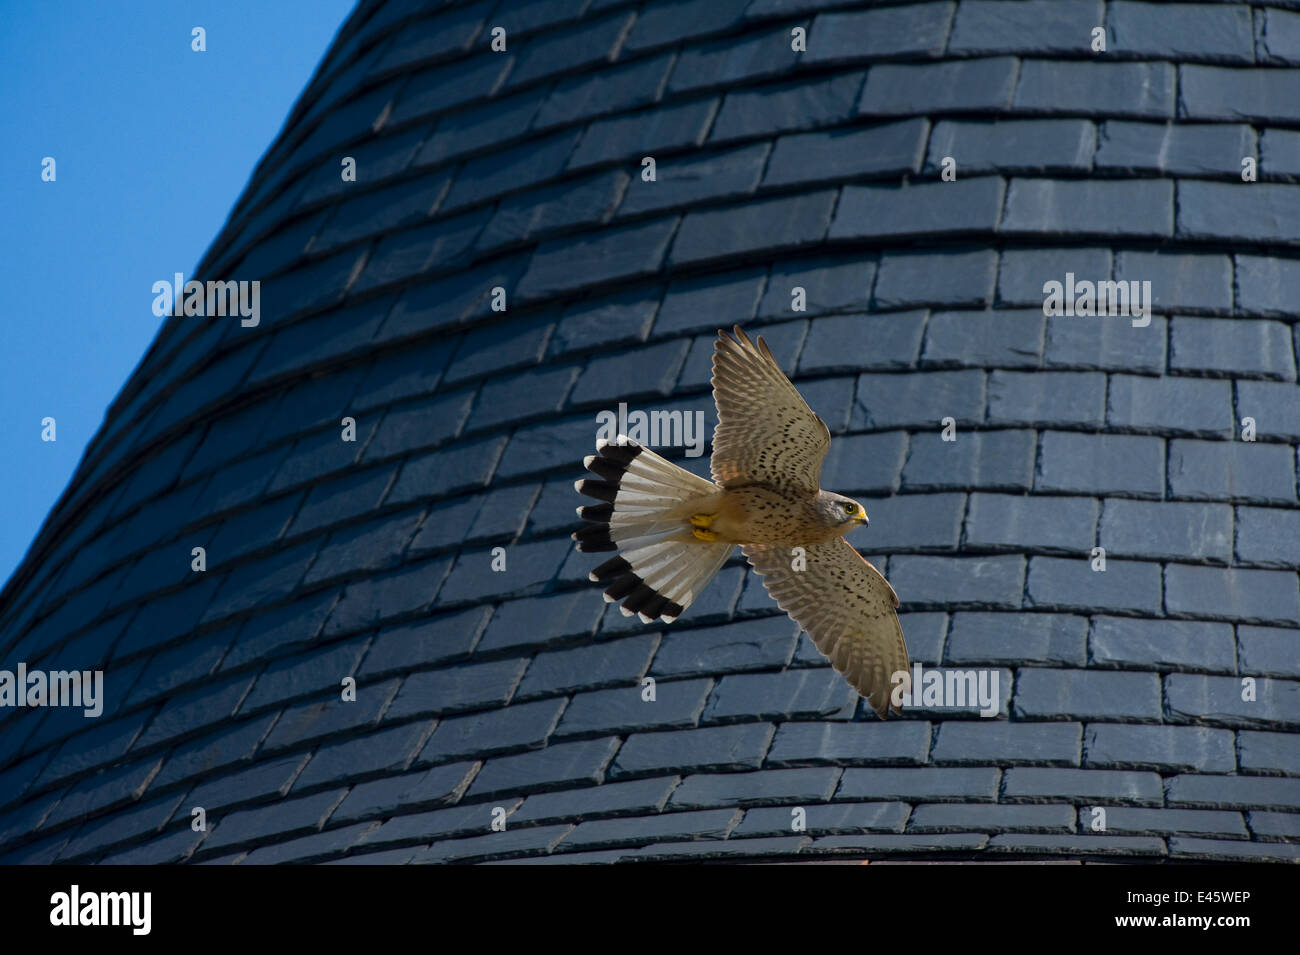 Kestrel (Falco tinnunculus) male in flight with wings spread. Paris, France - Stock Image